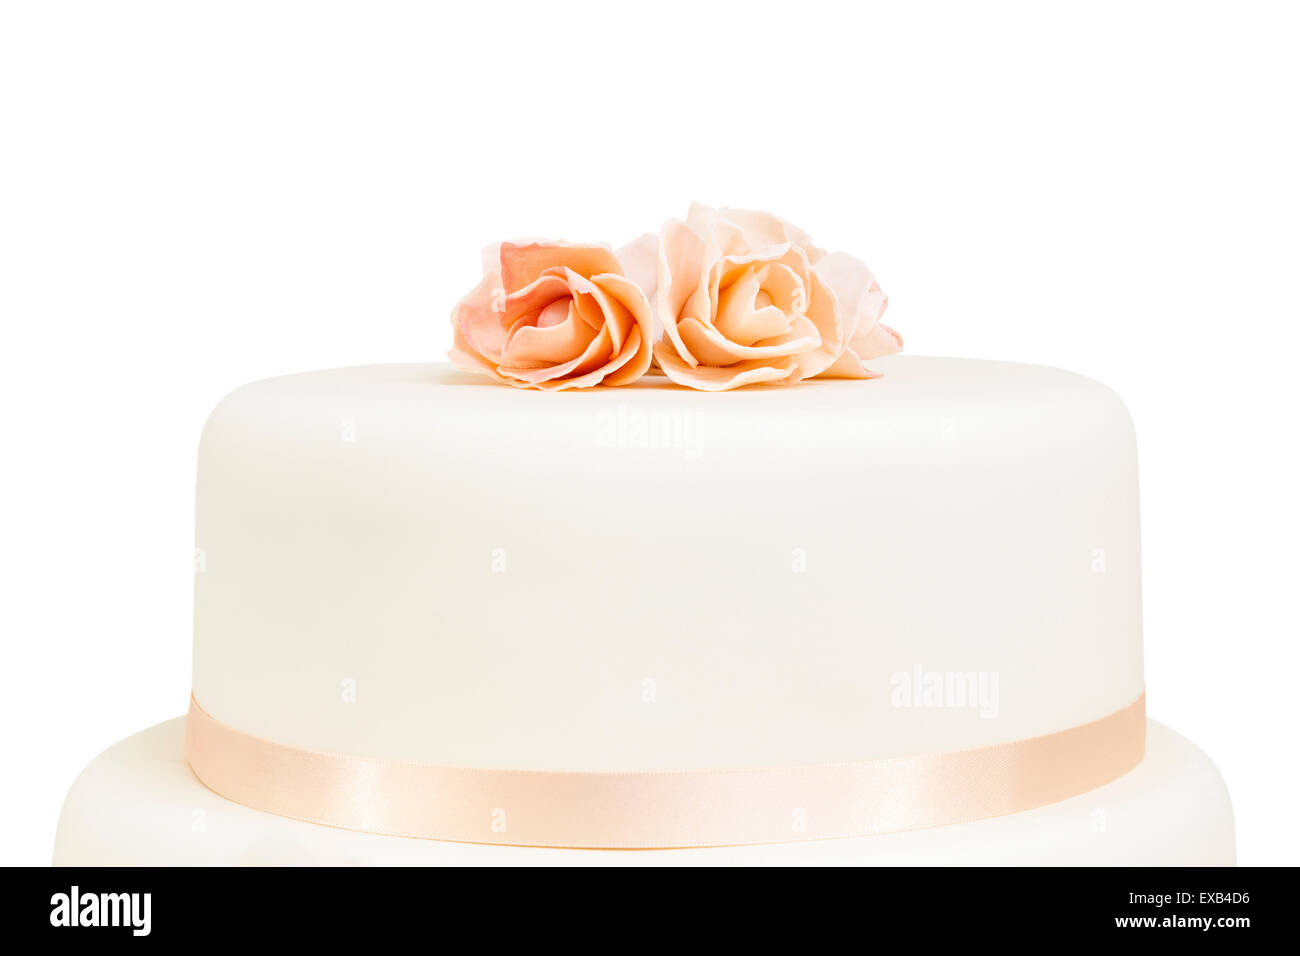 Simple style cake with a decoration of rose petals. Cut out and ...